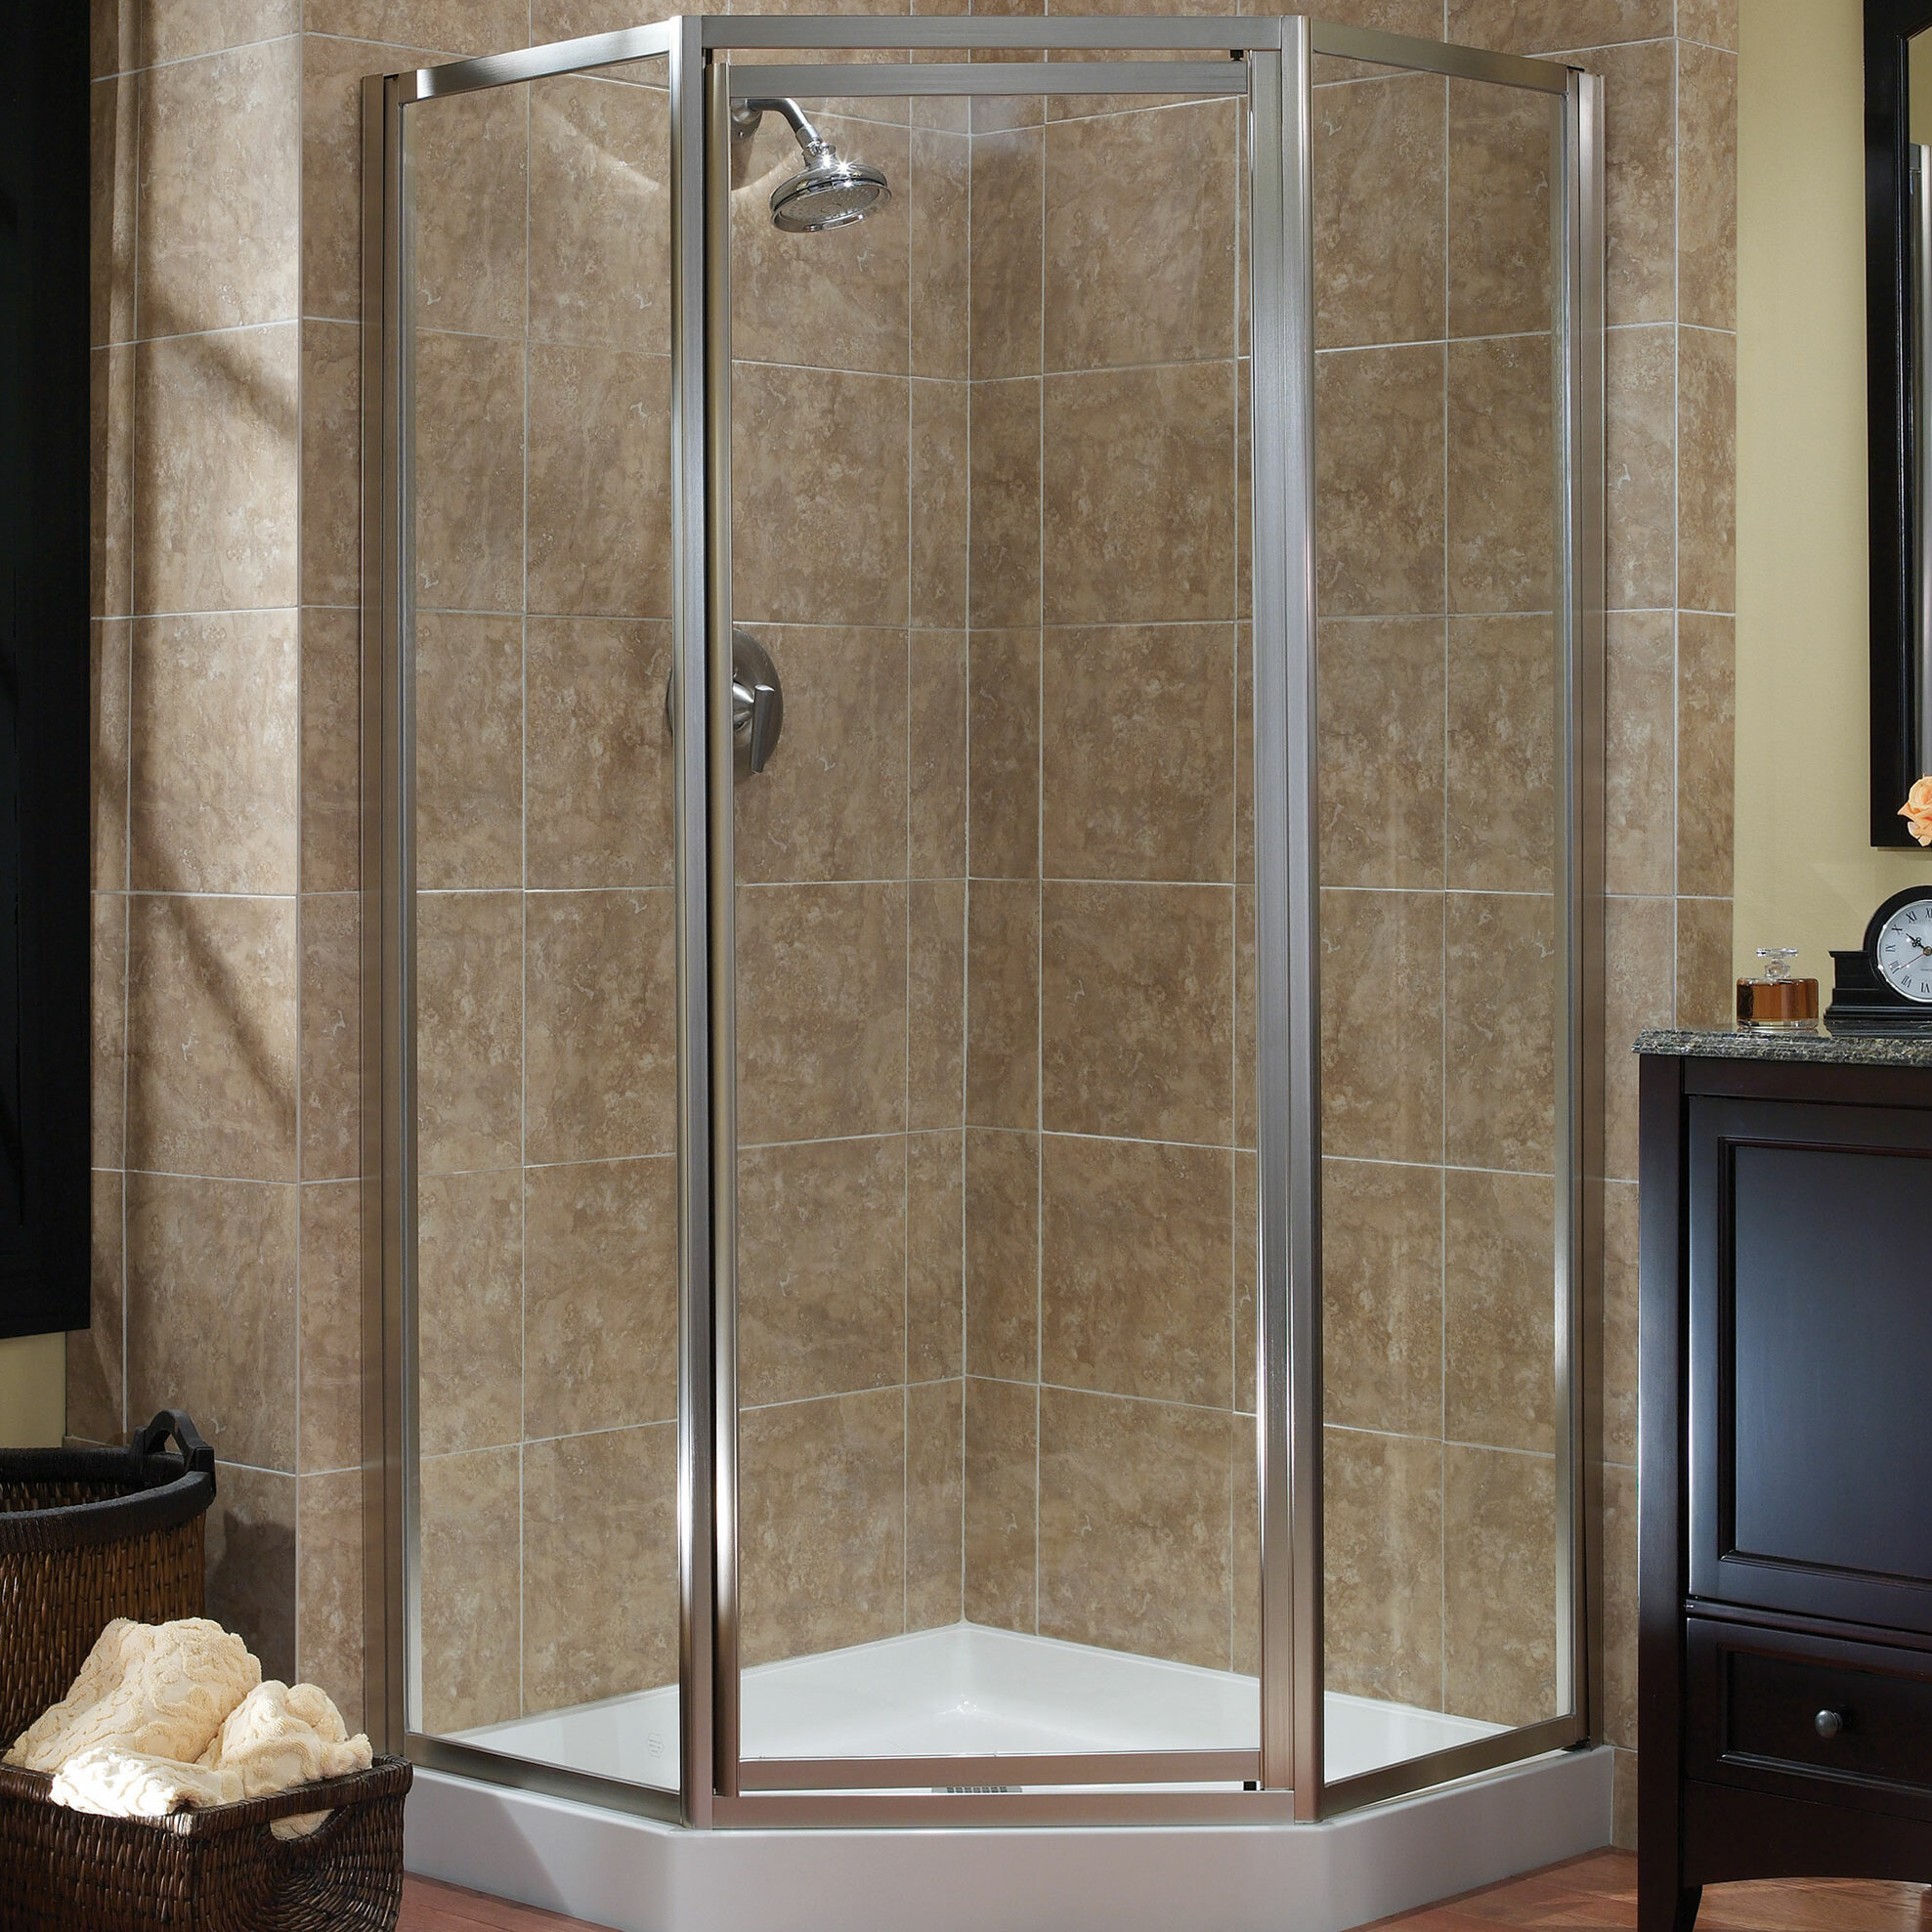 sandblast panel door clear return glass fade mirror with frameless header enclosure pin installed rex shower vigo to furnished privacy by co